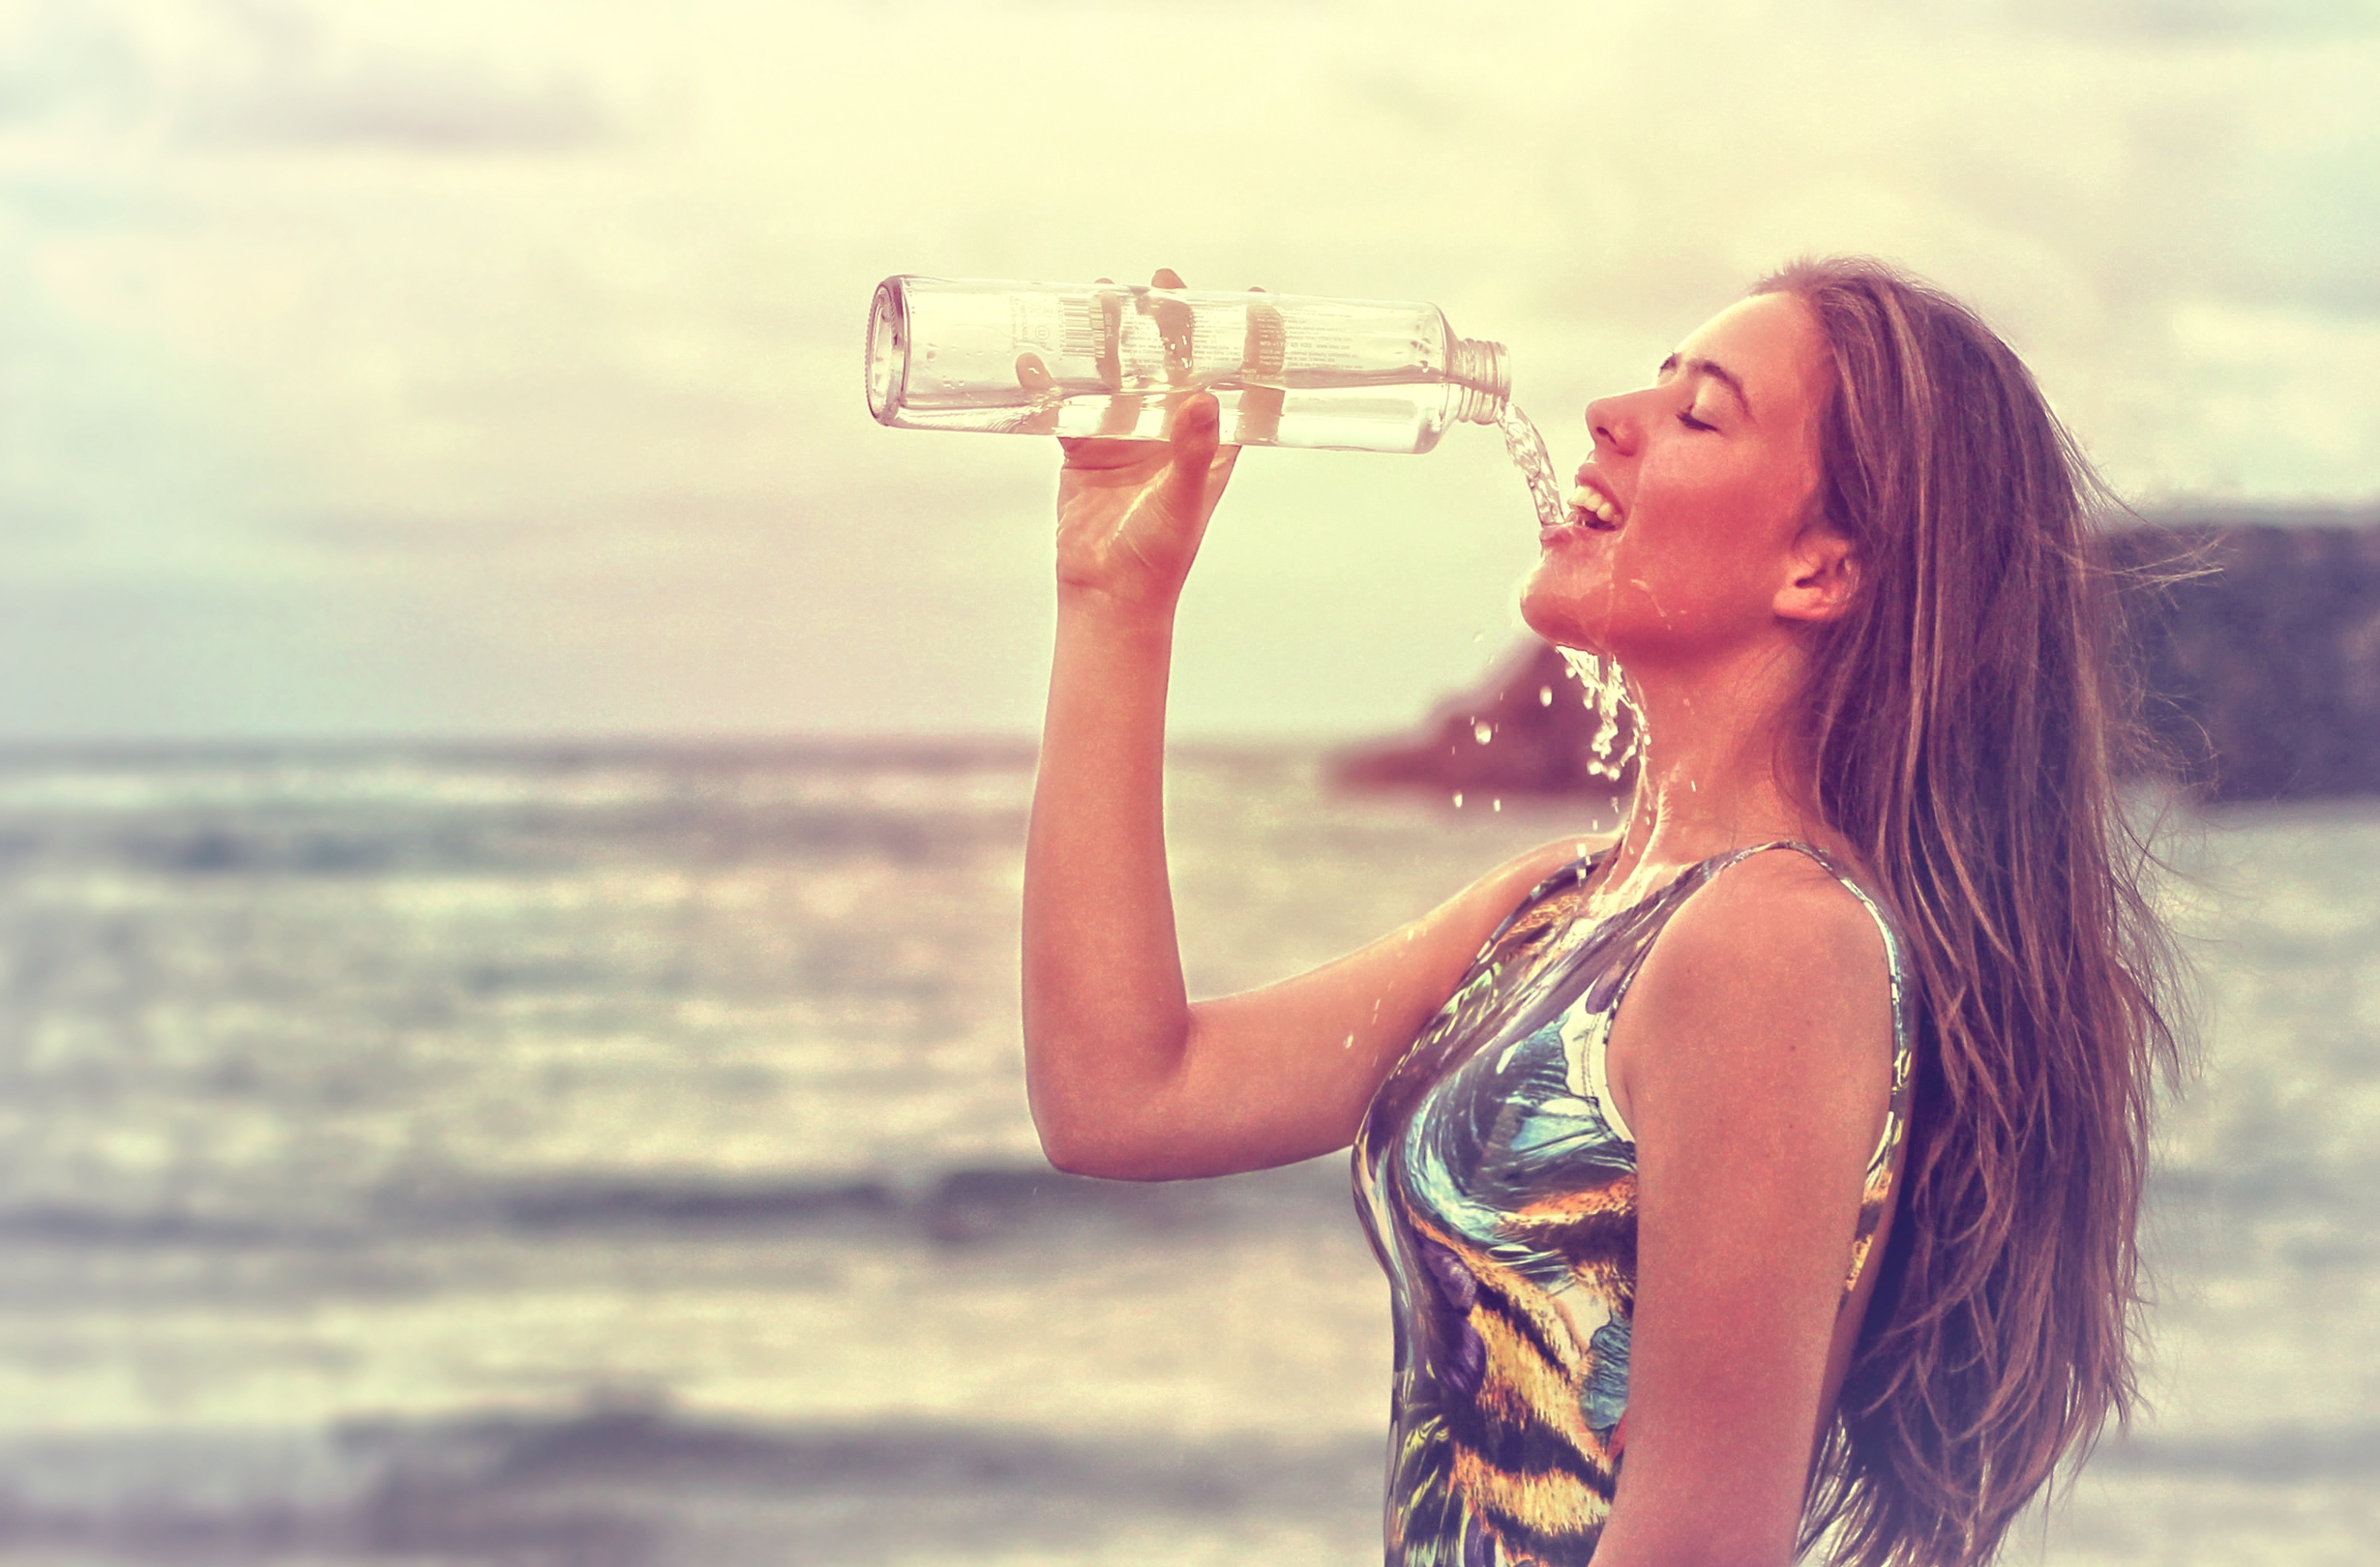 Young woman drinking sparkling water at the beach - health and fitness photo